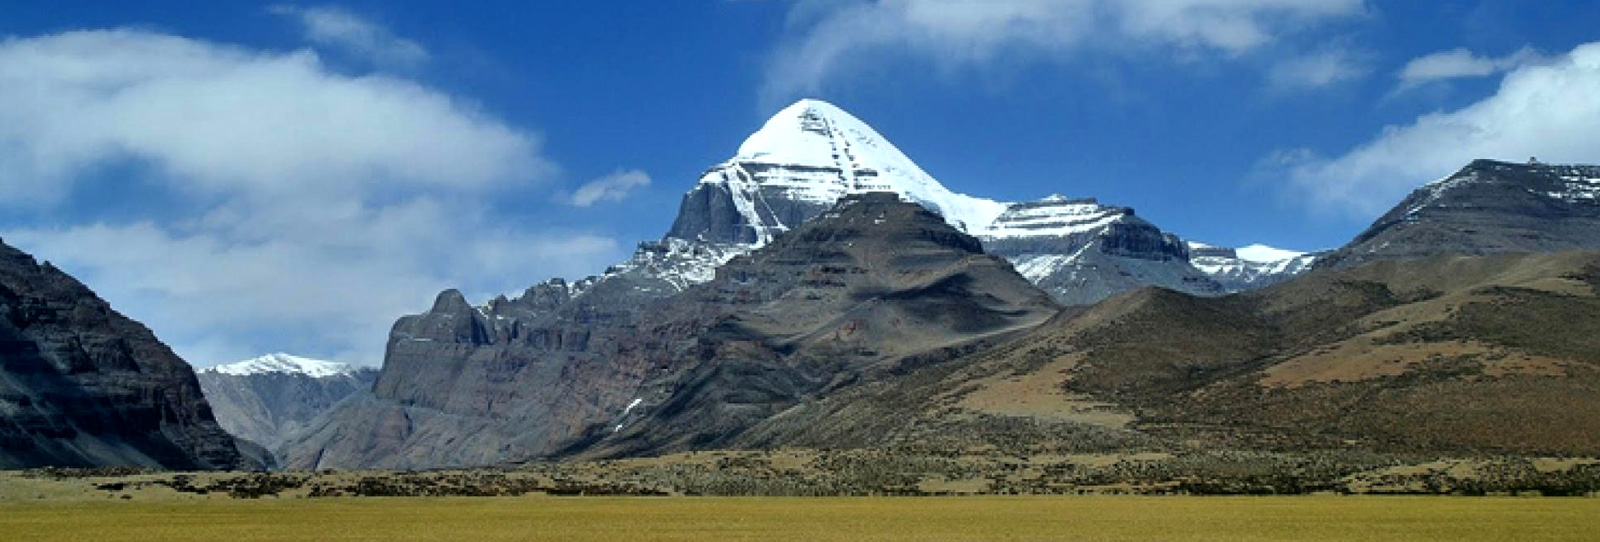 A Pilgrimage to Mt. Kailash and Mansarovar